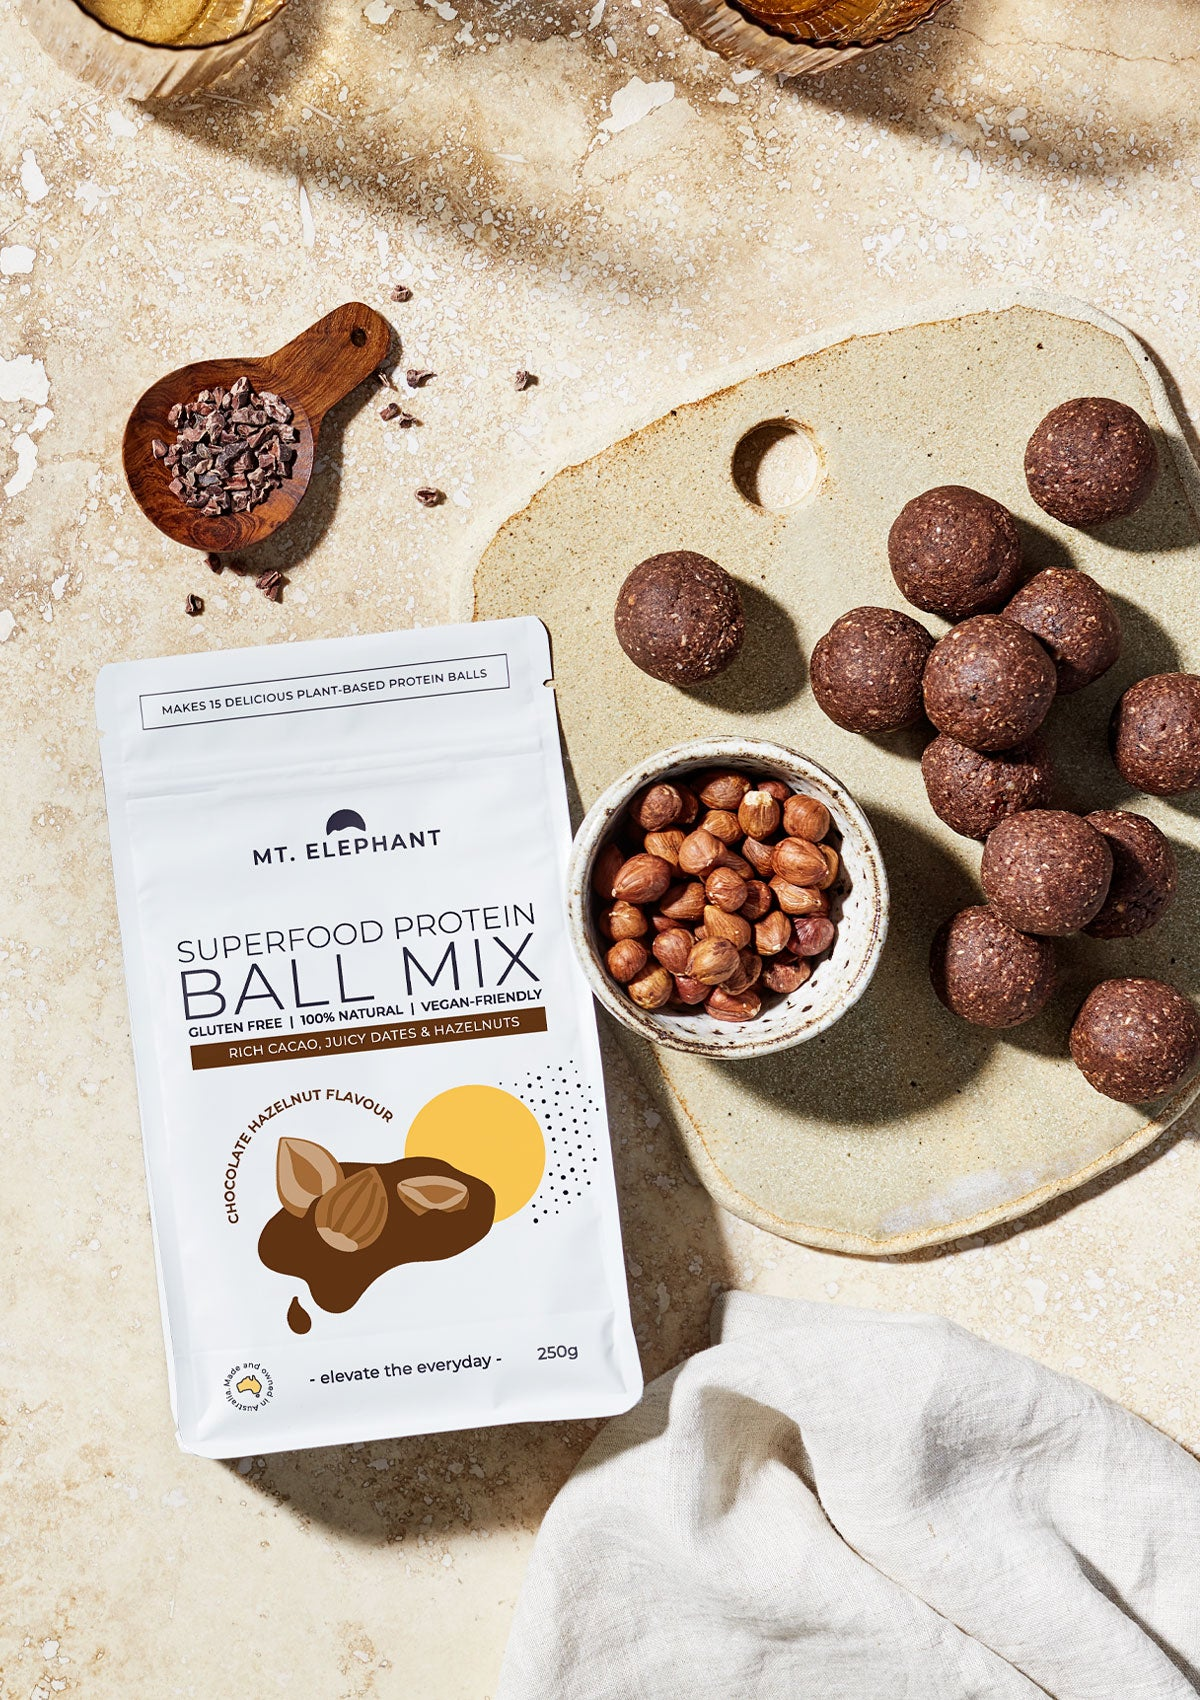 superfood protein ball vegan natural vegan protein ball mt elephant baking vegan baking vegan eating